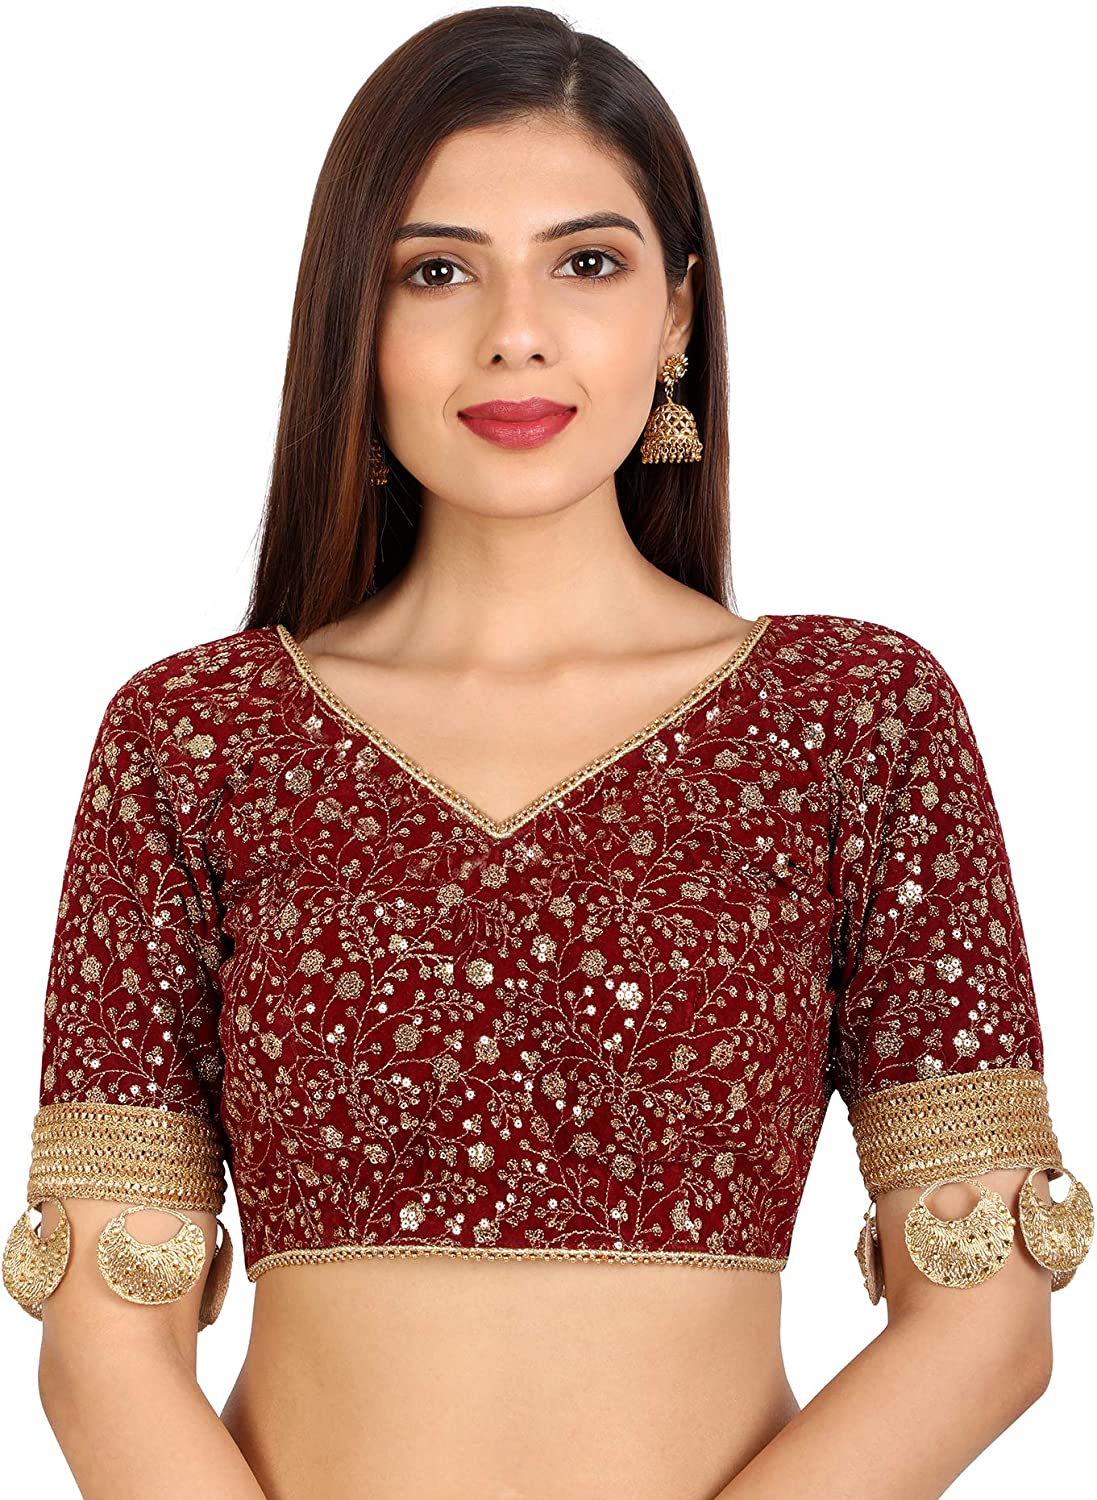 Libra Fashion Bollywood Style Indian Maroon B Sleeve Special sale New Orleans Mall item Saree Elbow